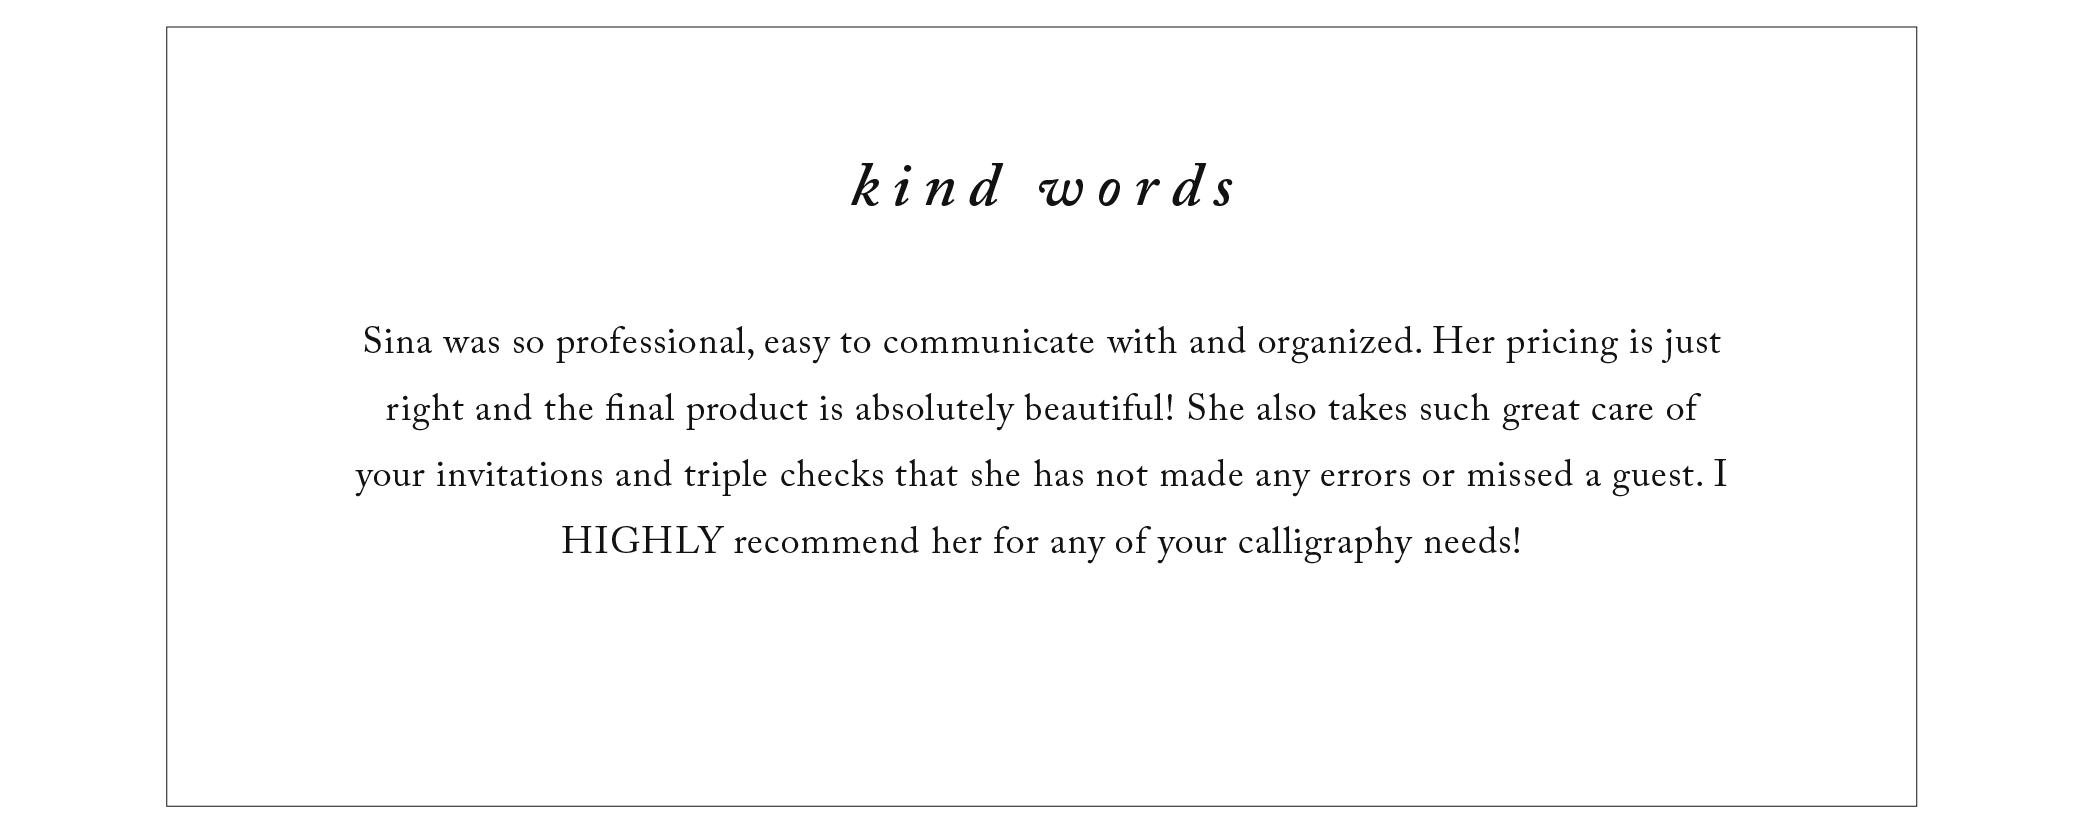 Kind Words Web_5.png